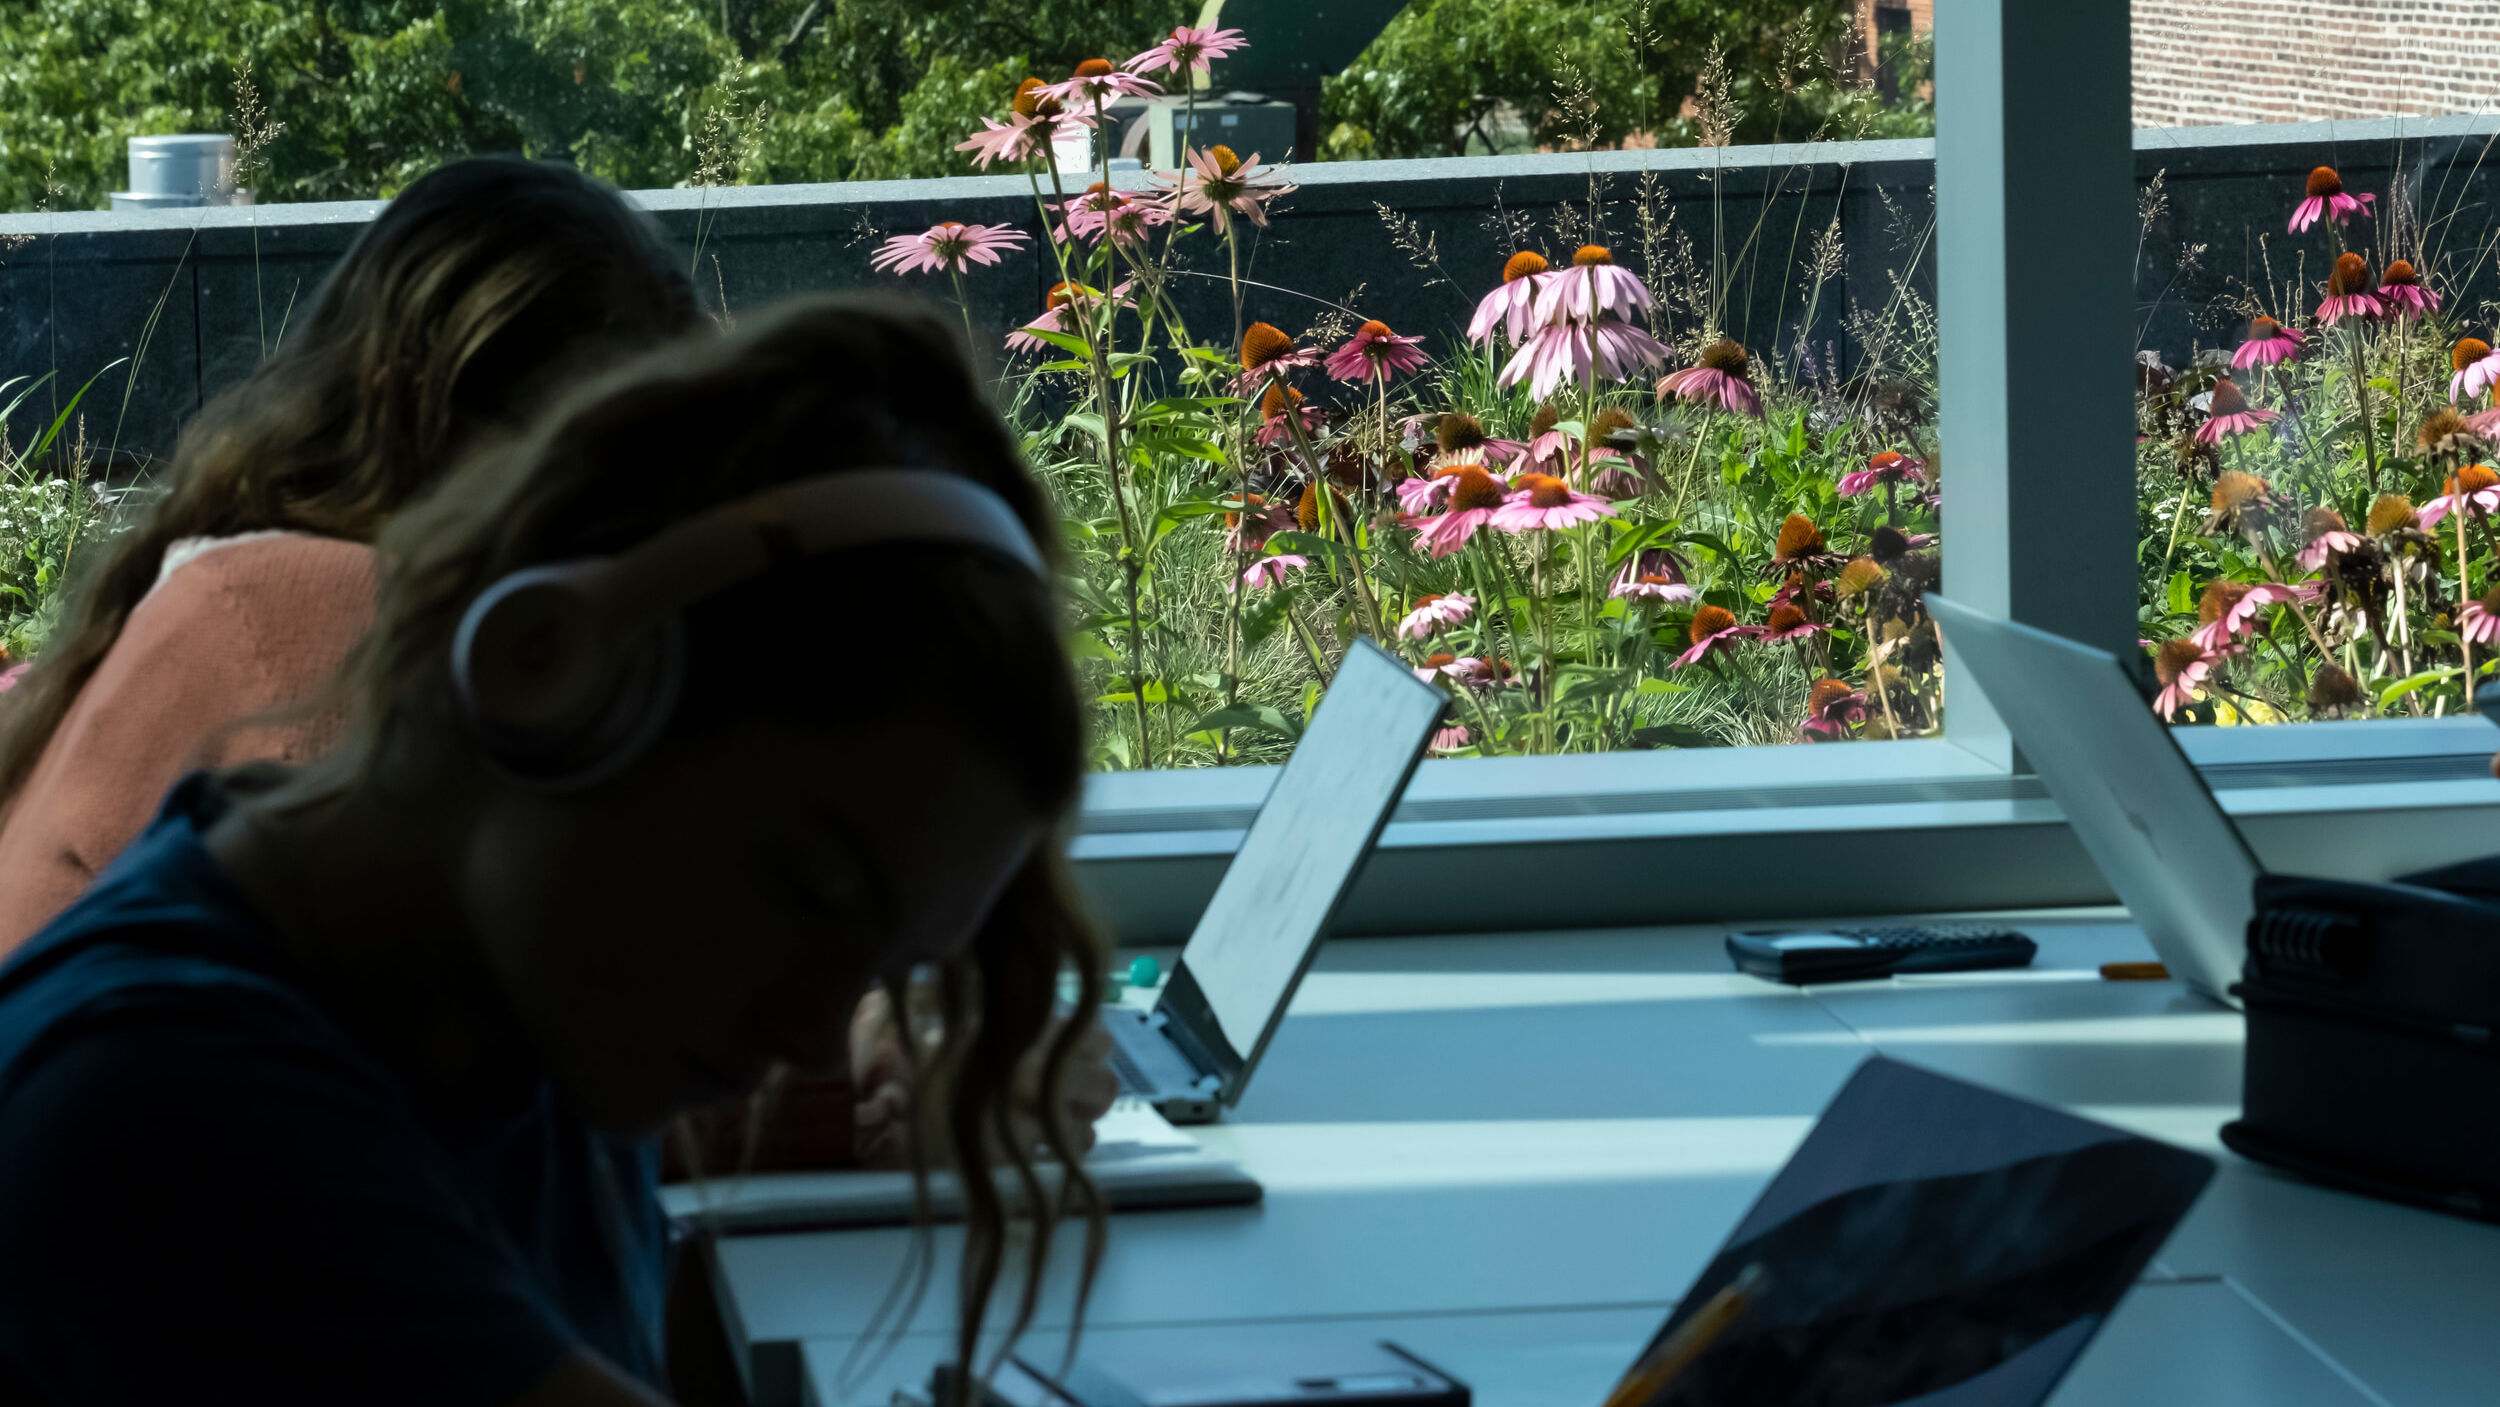 Students studying in Charles Library, with the green roof visible through a window nearby.